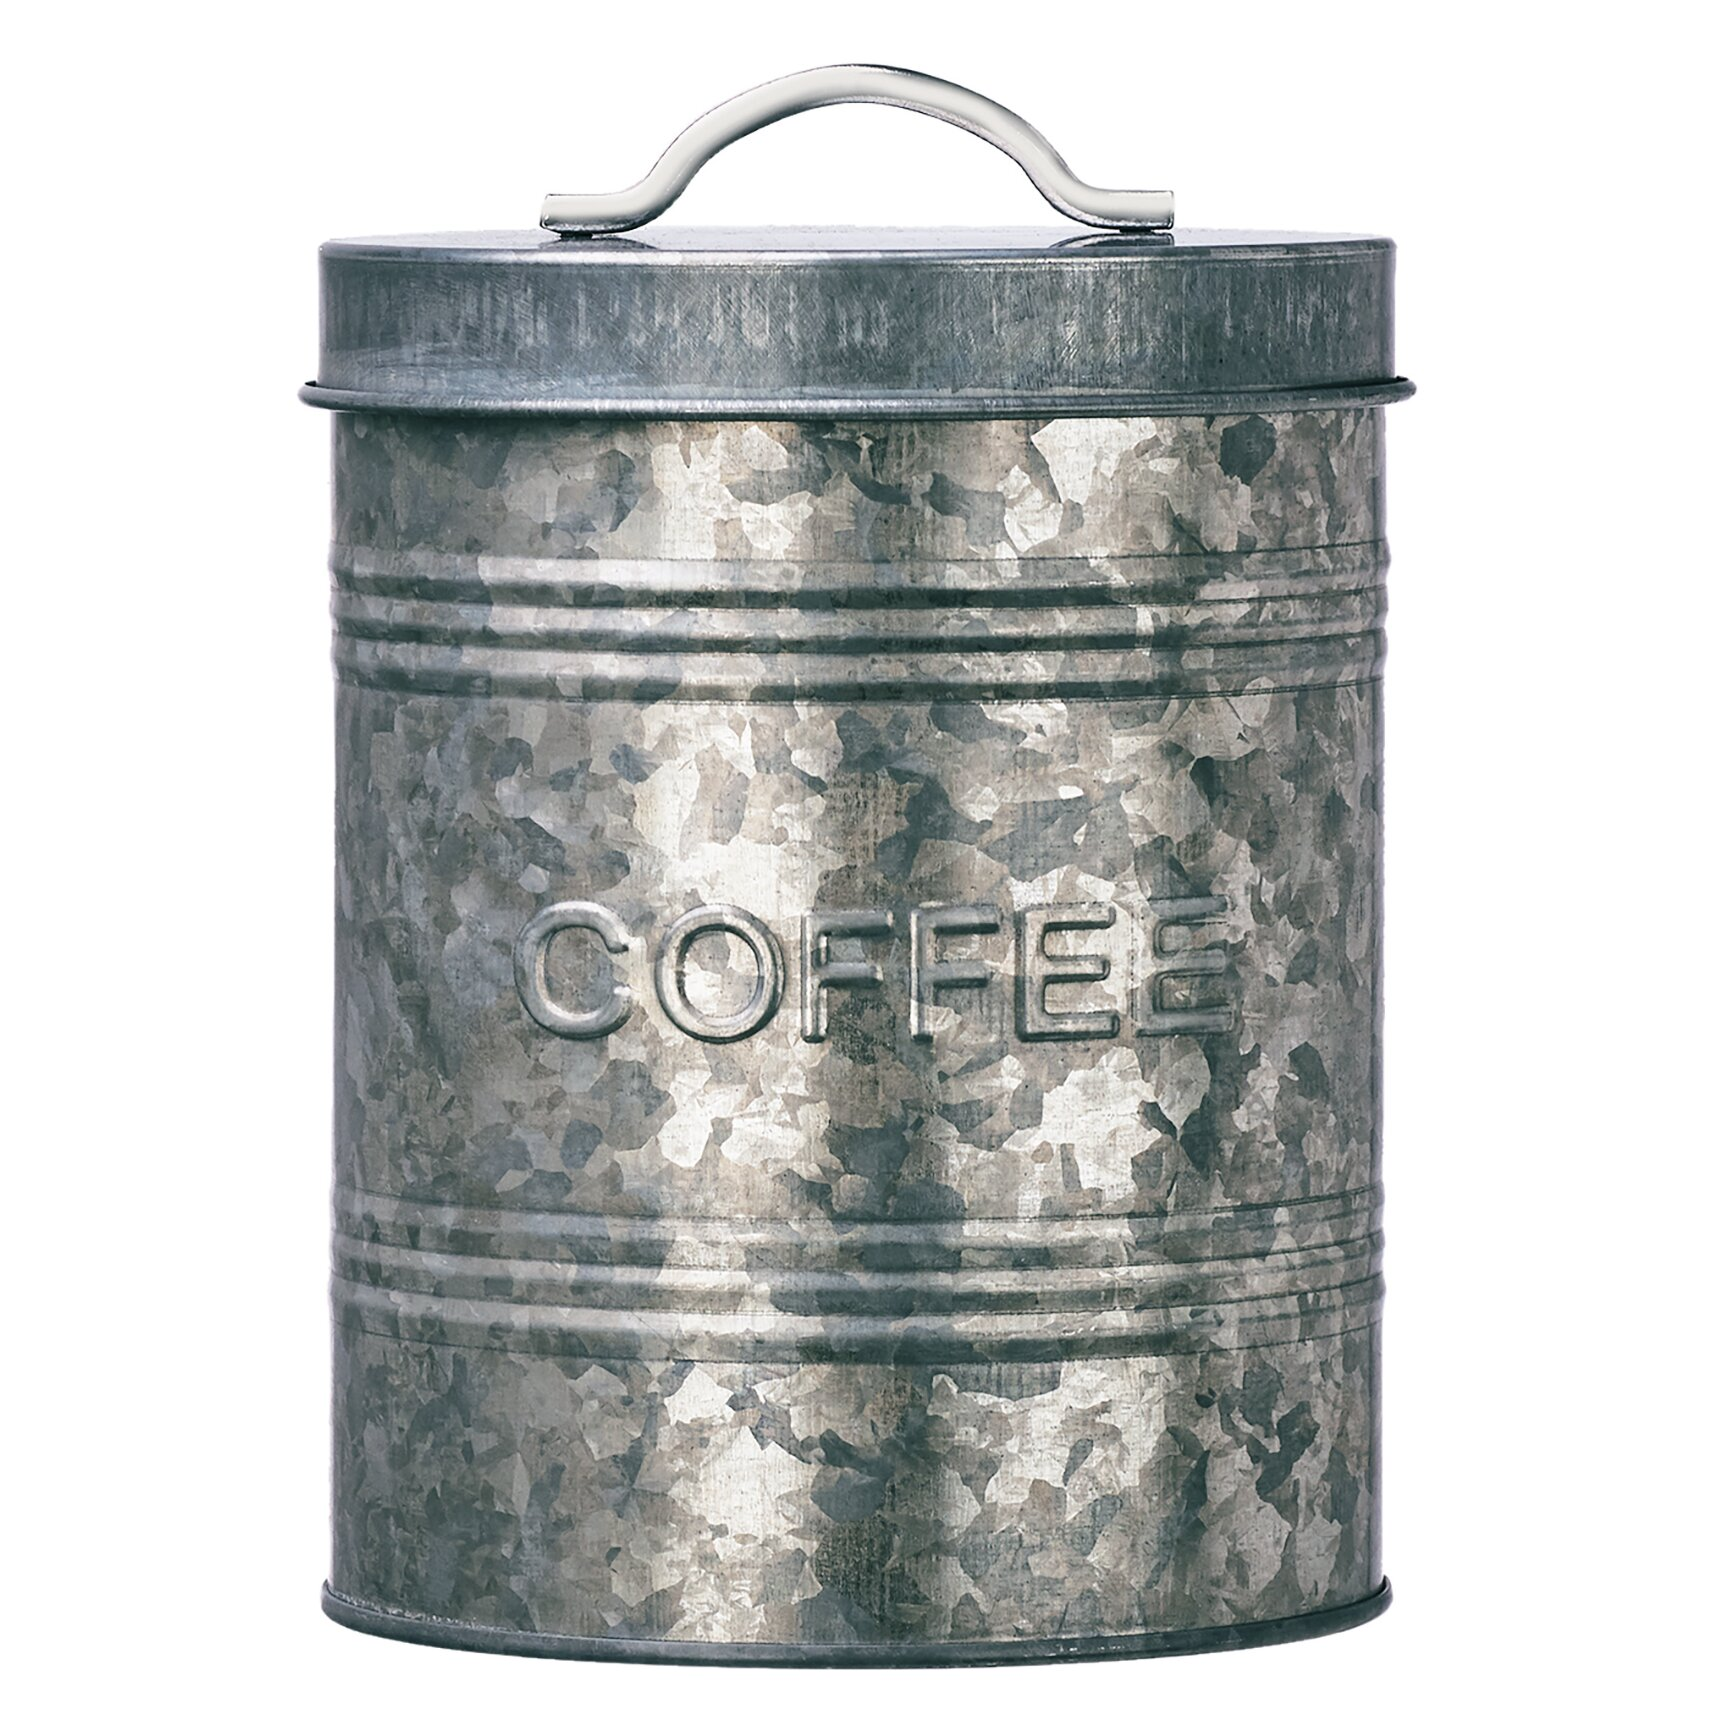 Rustic Kitchen Canisters Global Amici 225 Quart Rustic Kitchen Galvanized Metal Canister